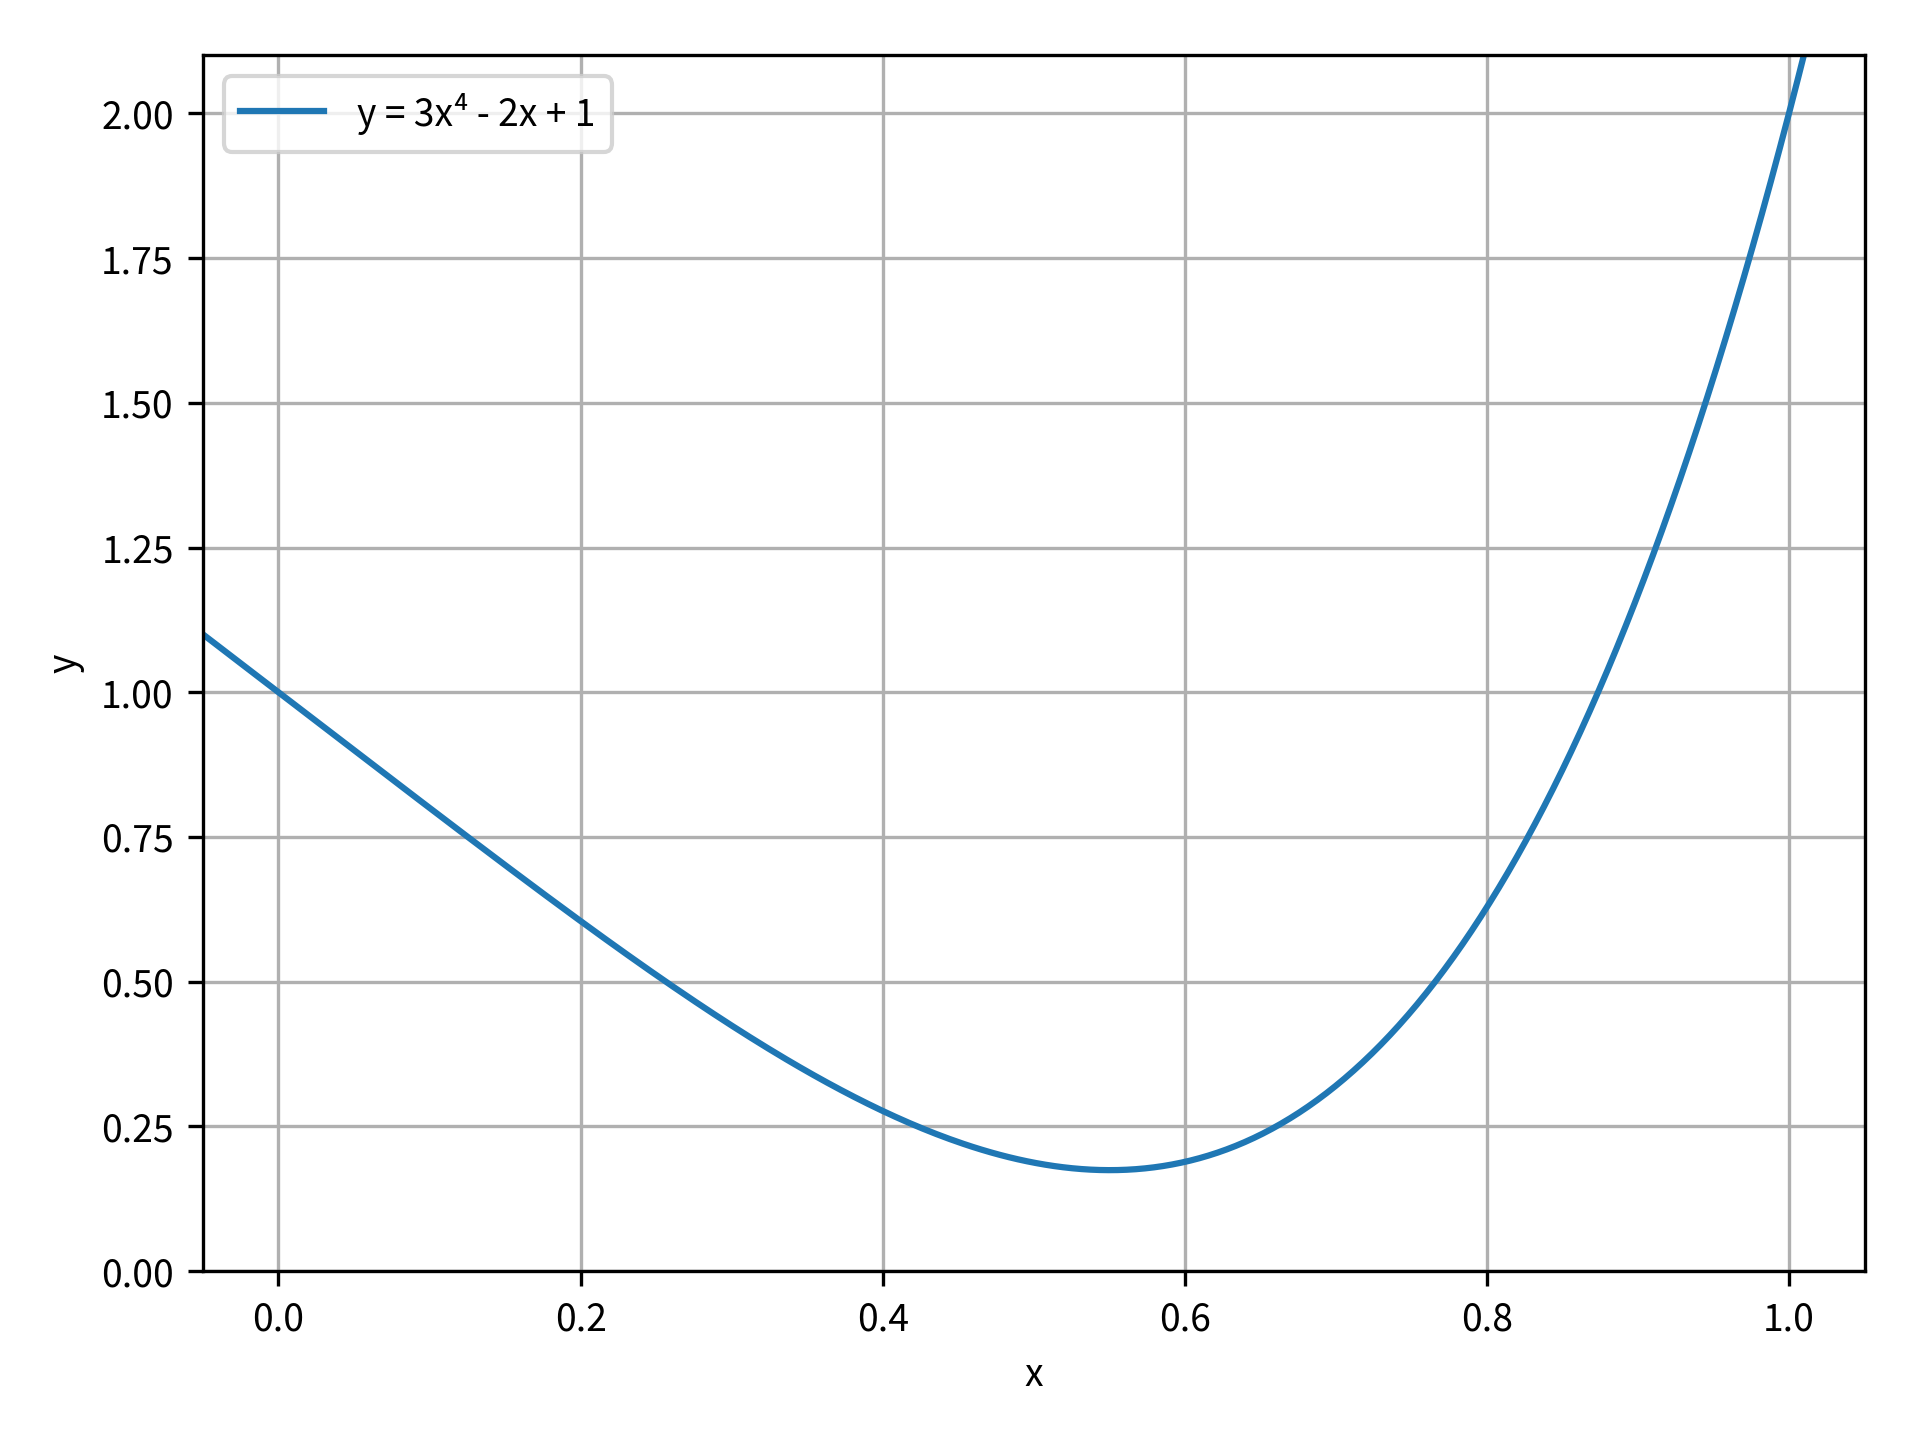 The function y=3x⁴-2x+1 plotted on the domain from from -0.05 to 1.05